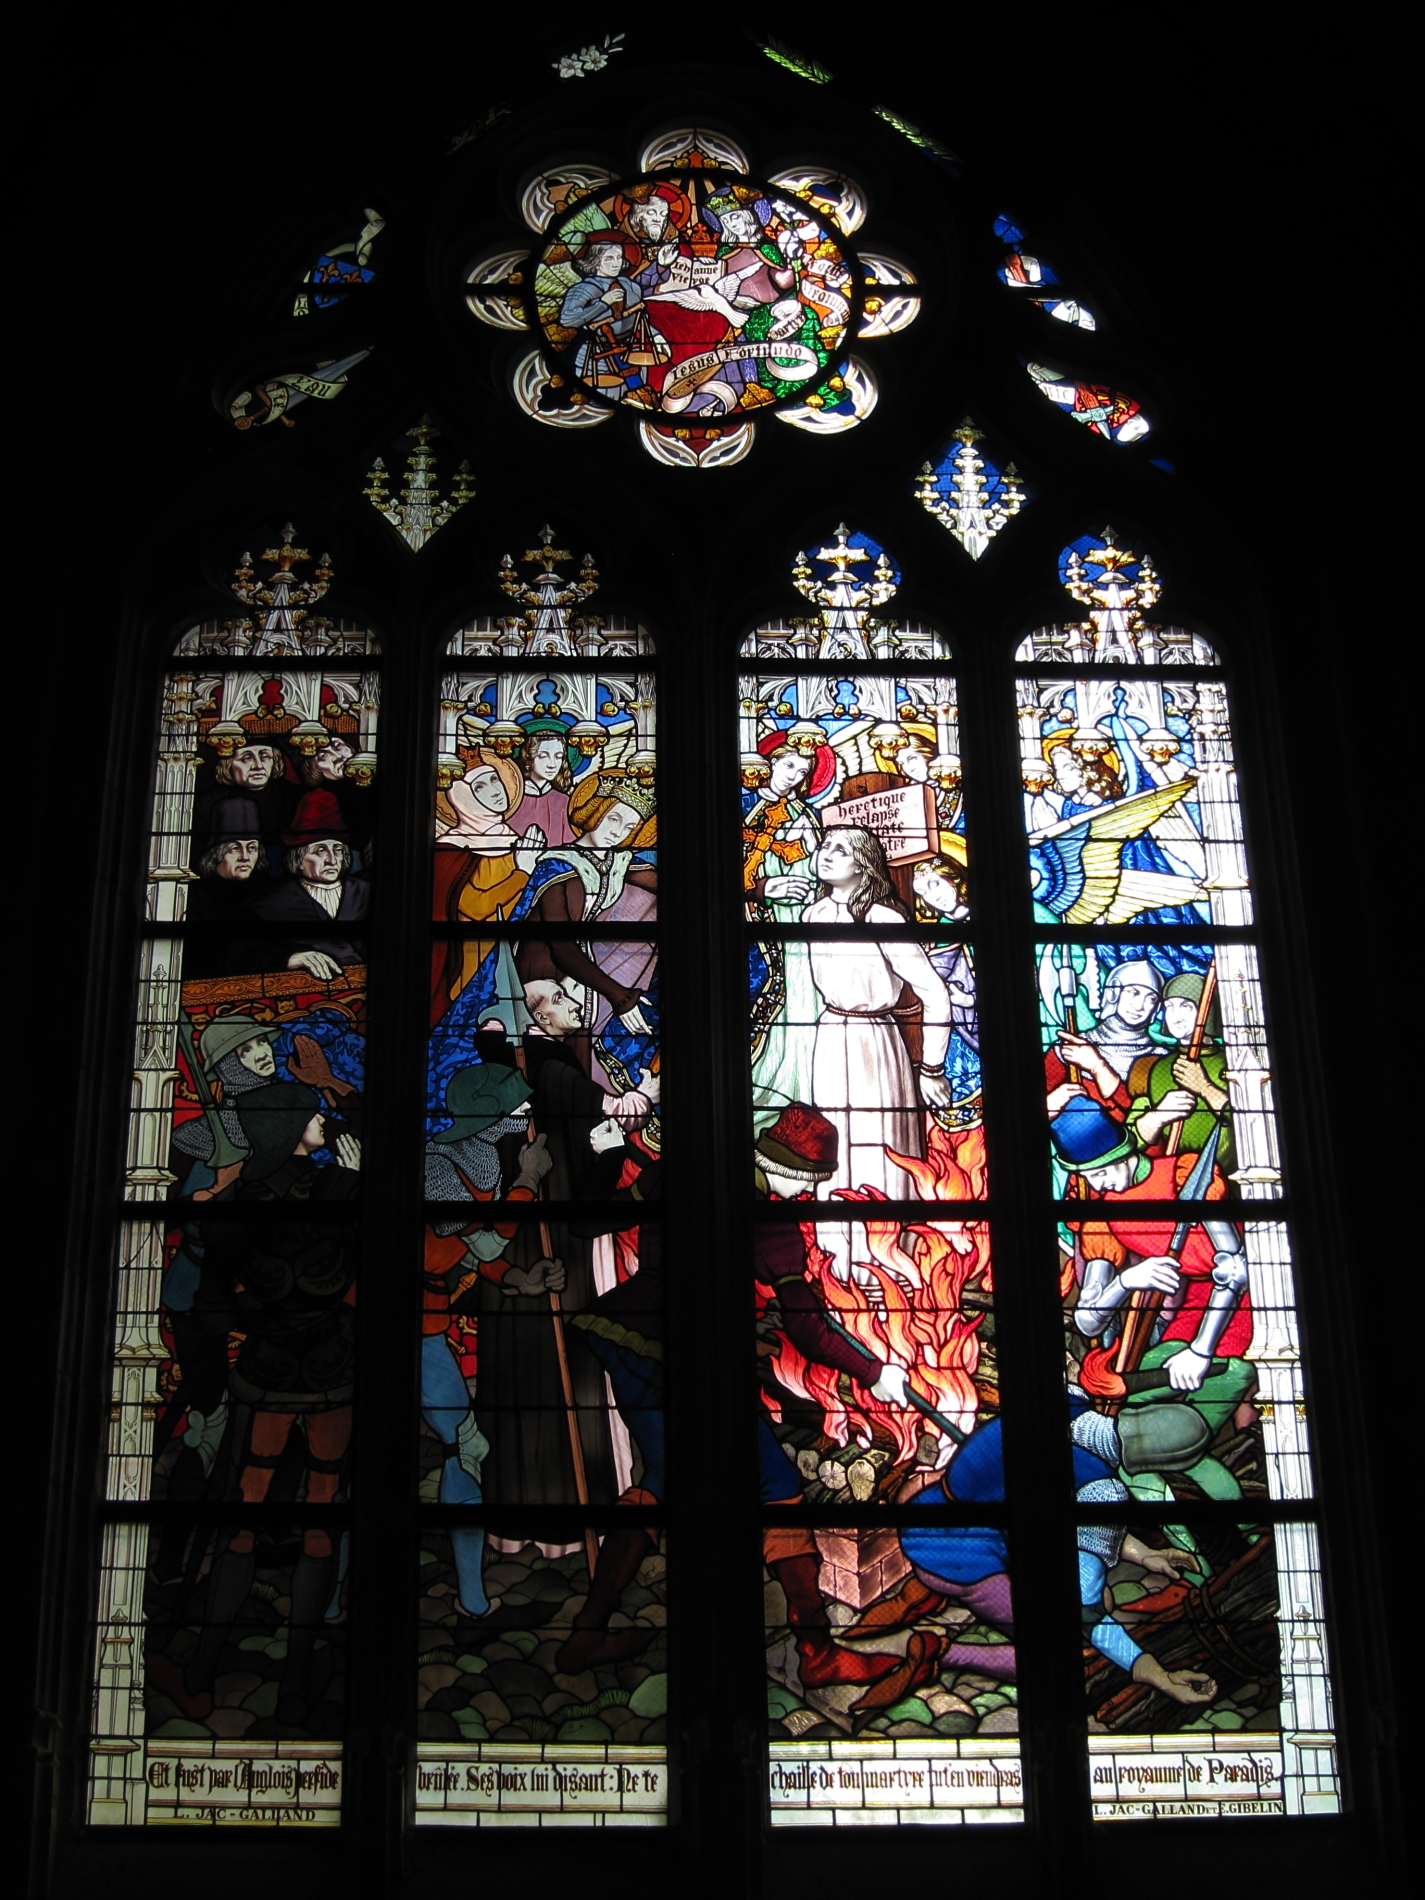 Joan of Arc getting rather dramatically burned at the stake in a late-19th century stained glass window of La cathédrale Sainte-Croix in (Old) Orléans.